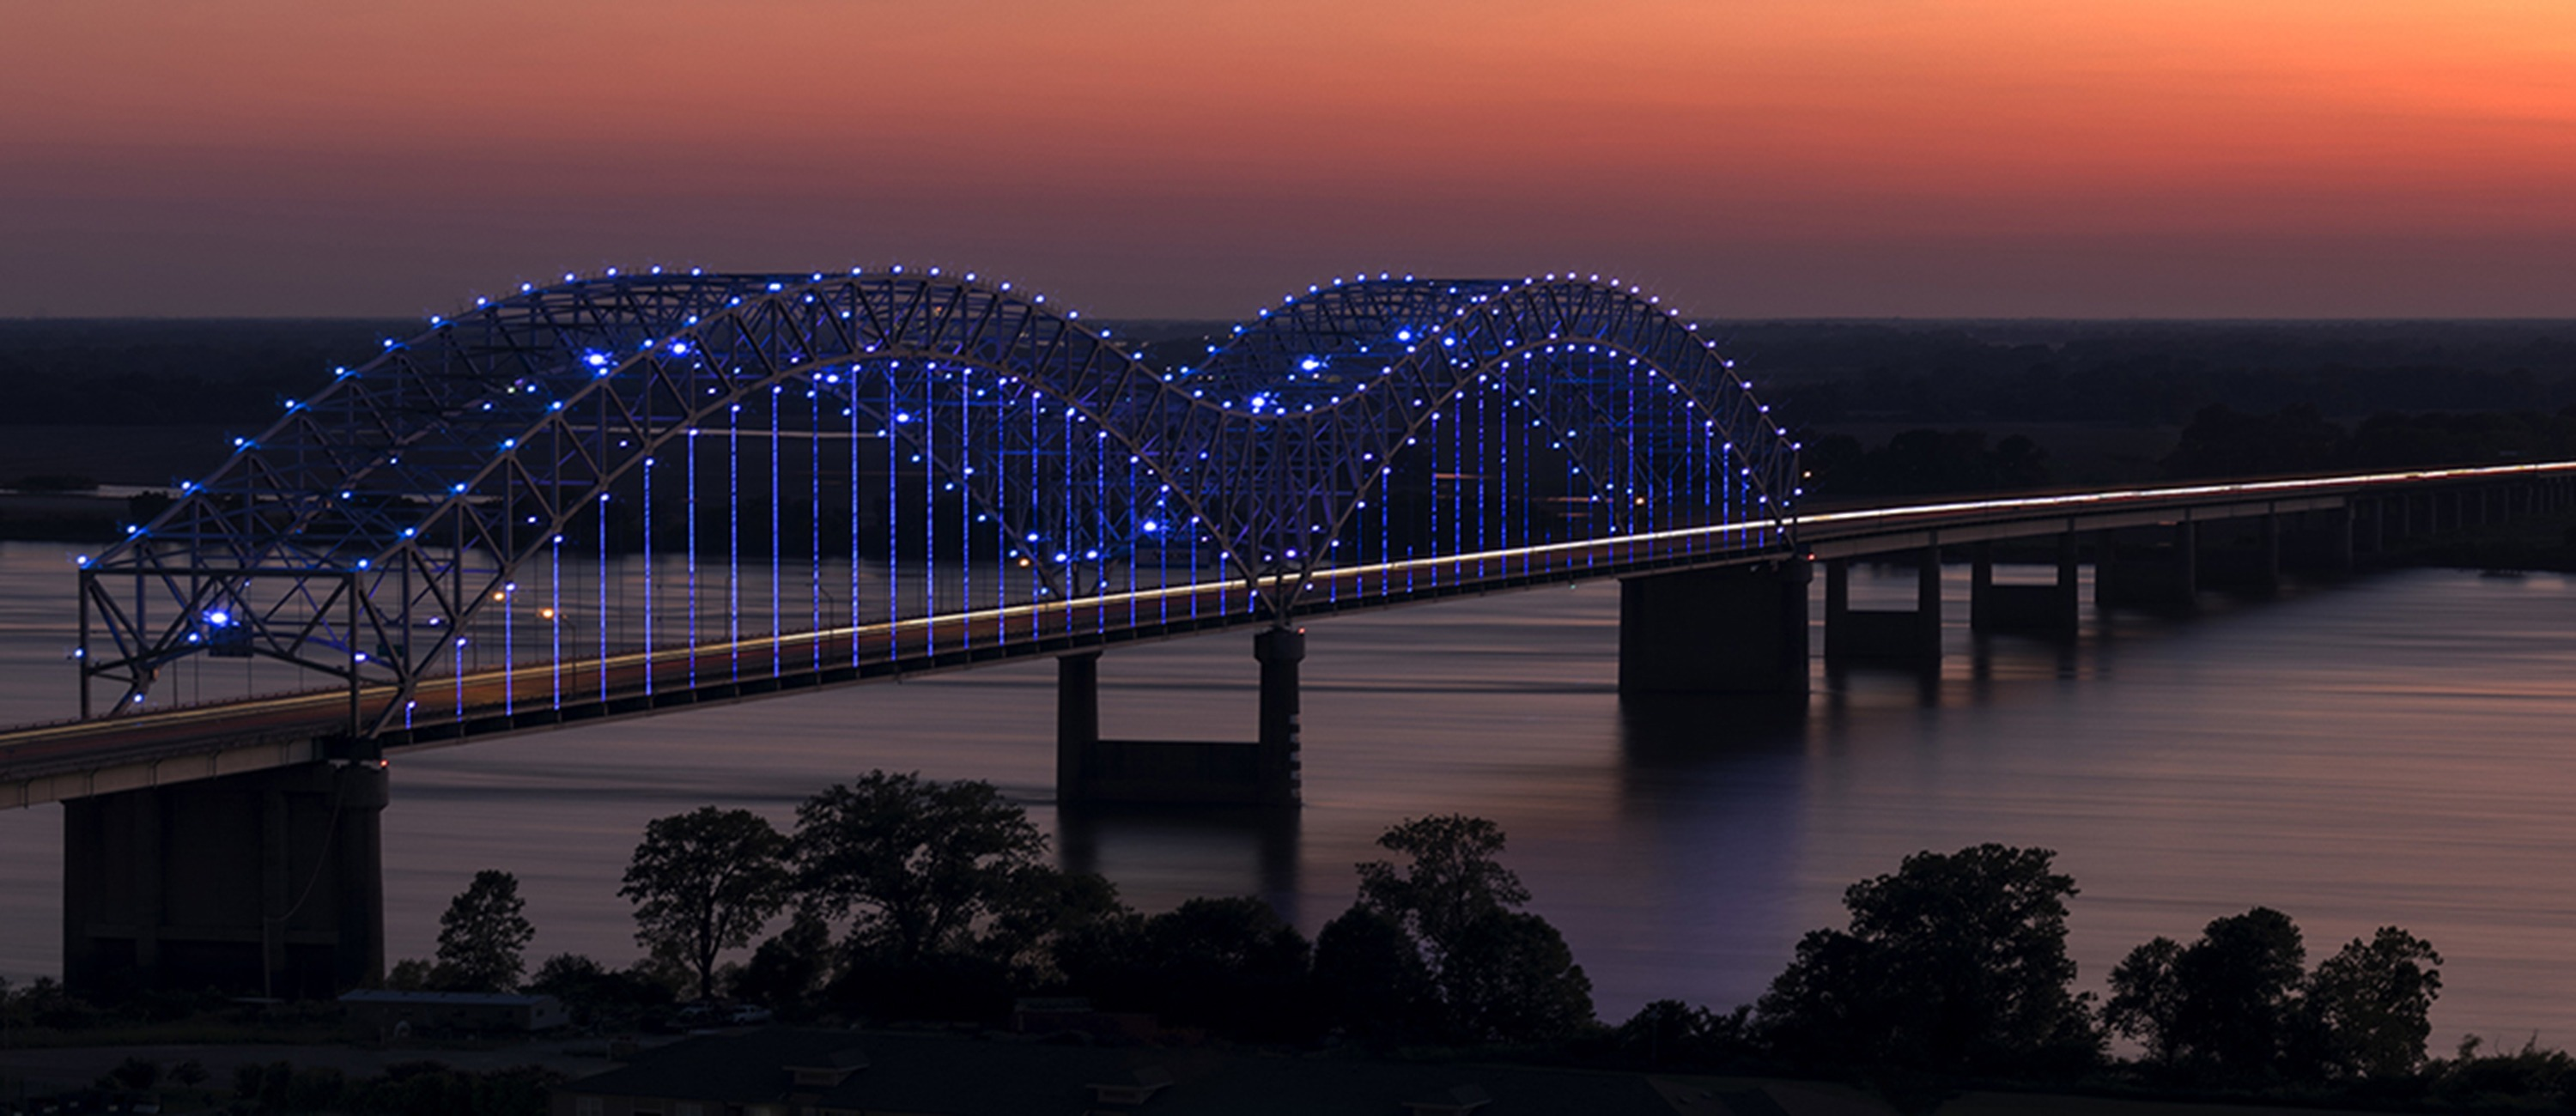 The Memphis bridge during sunset.